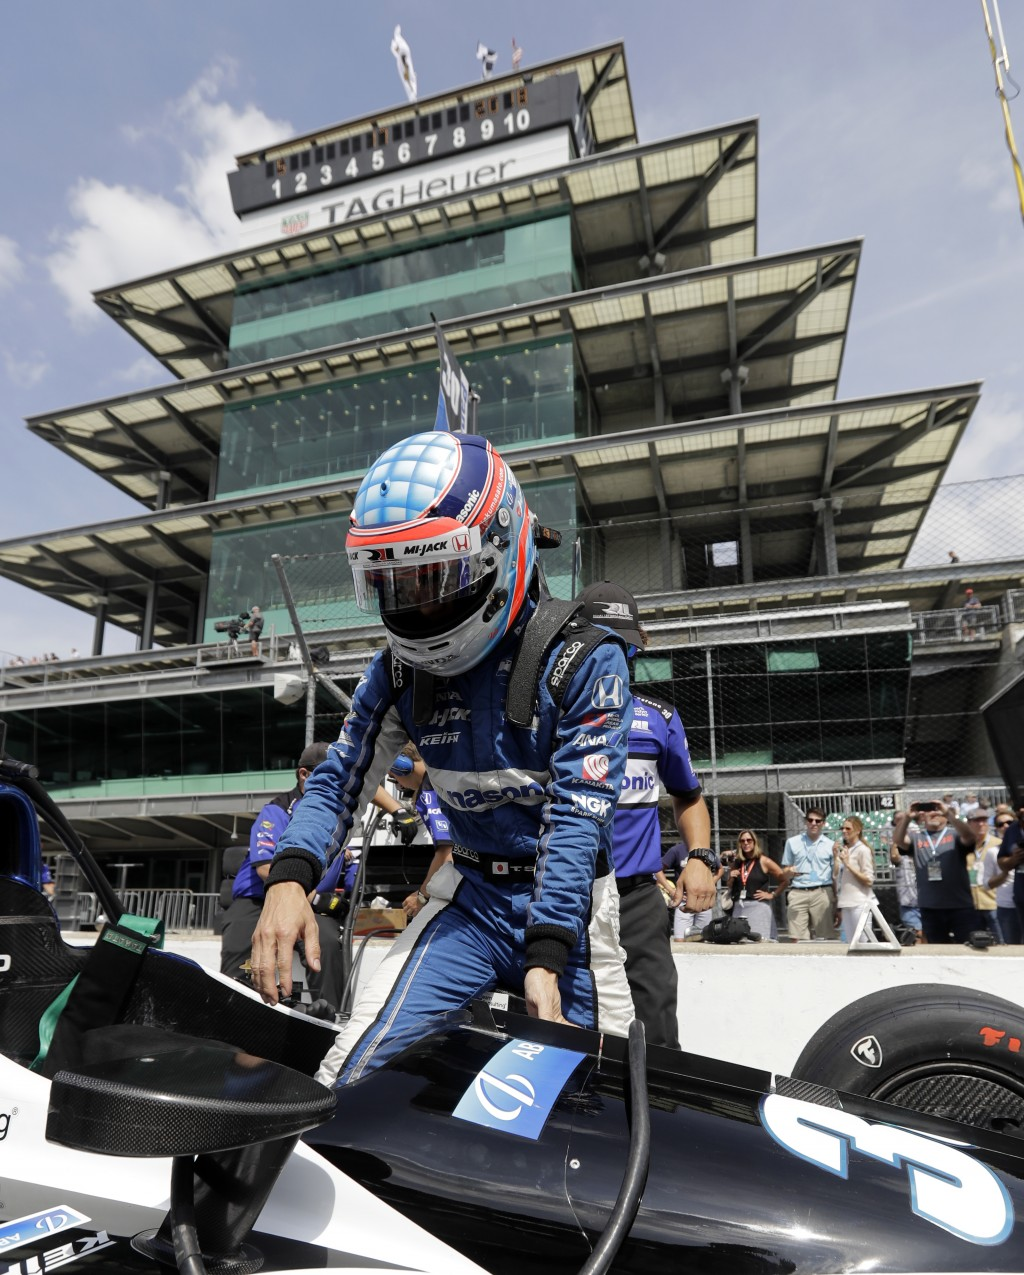 Takuma Sato, of Japan, climbs into his car during a practice session for the IndyCar Indianapolis 500 auto race at Indianapolis Motor Speedway in Indi